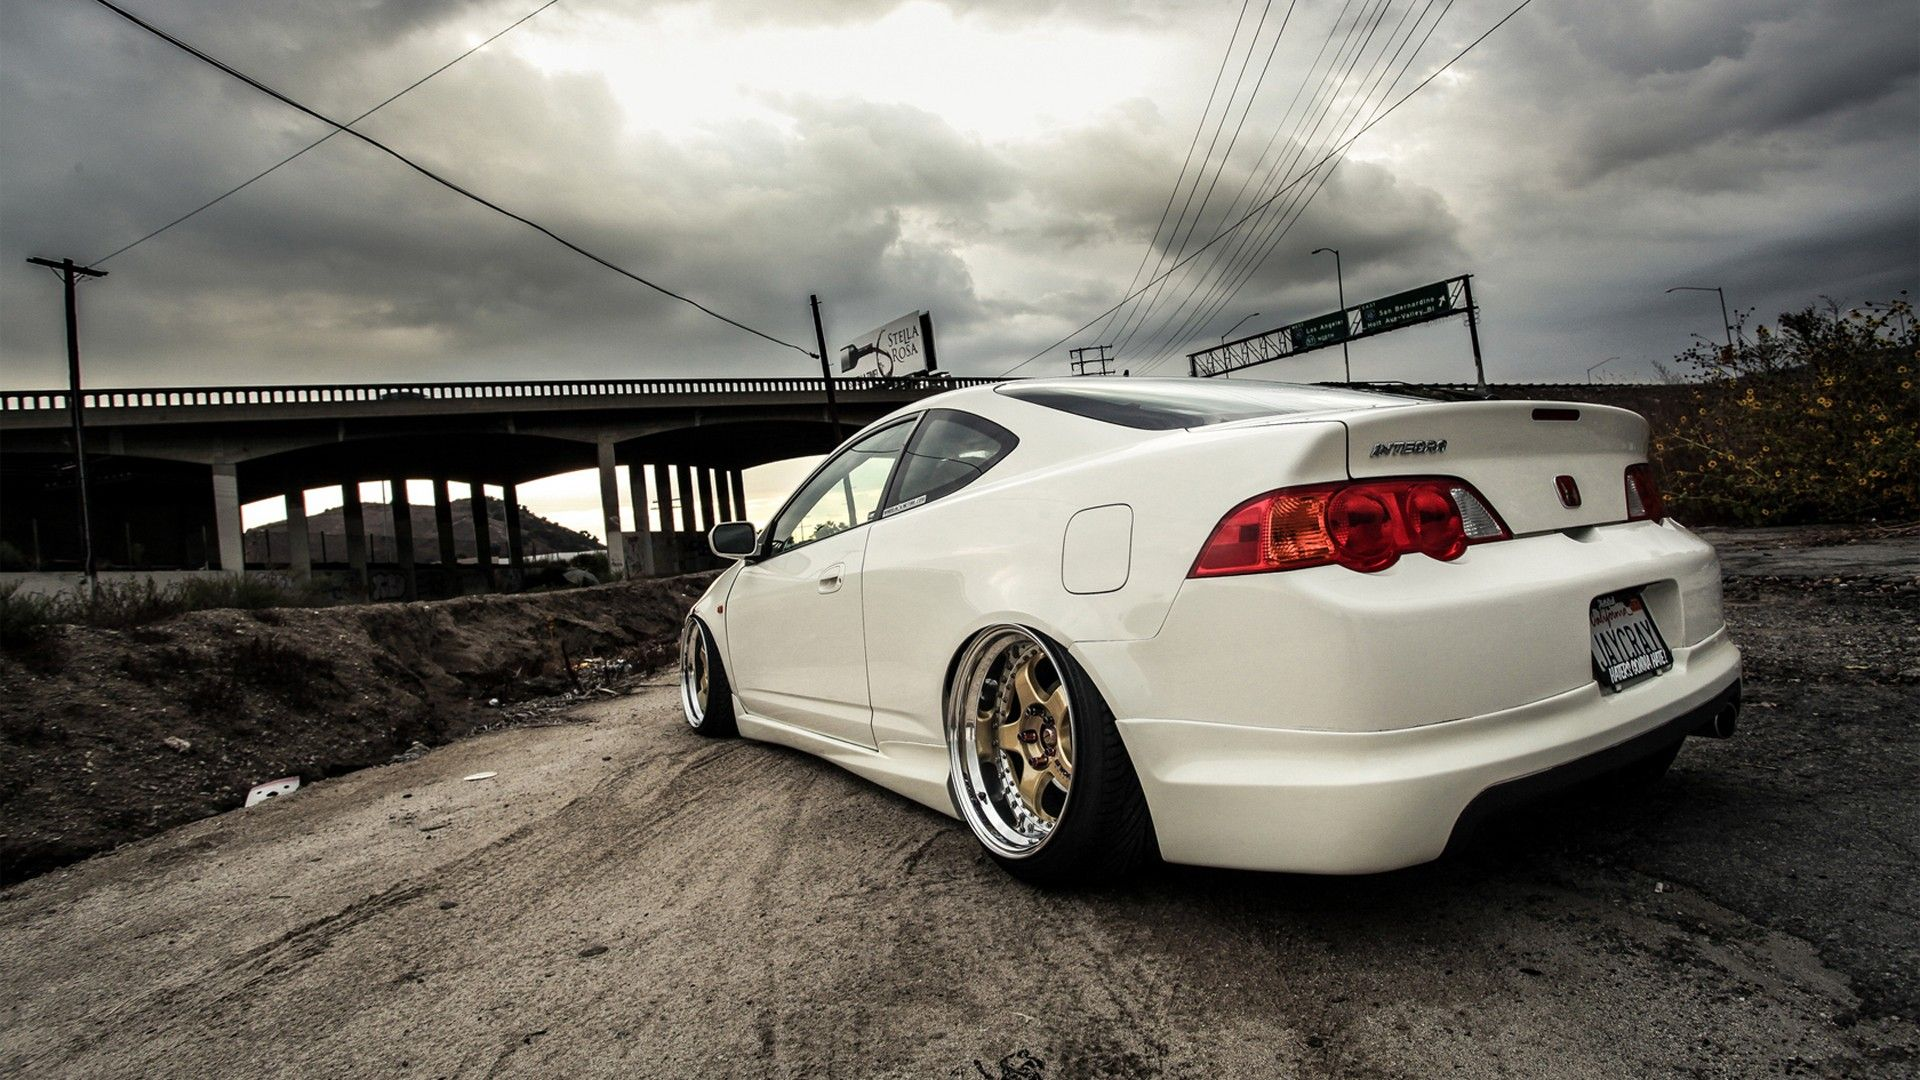 HD Car Wallpapers for Pc Acura rsx, Acura, Jdm honda